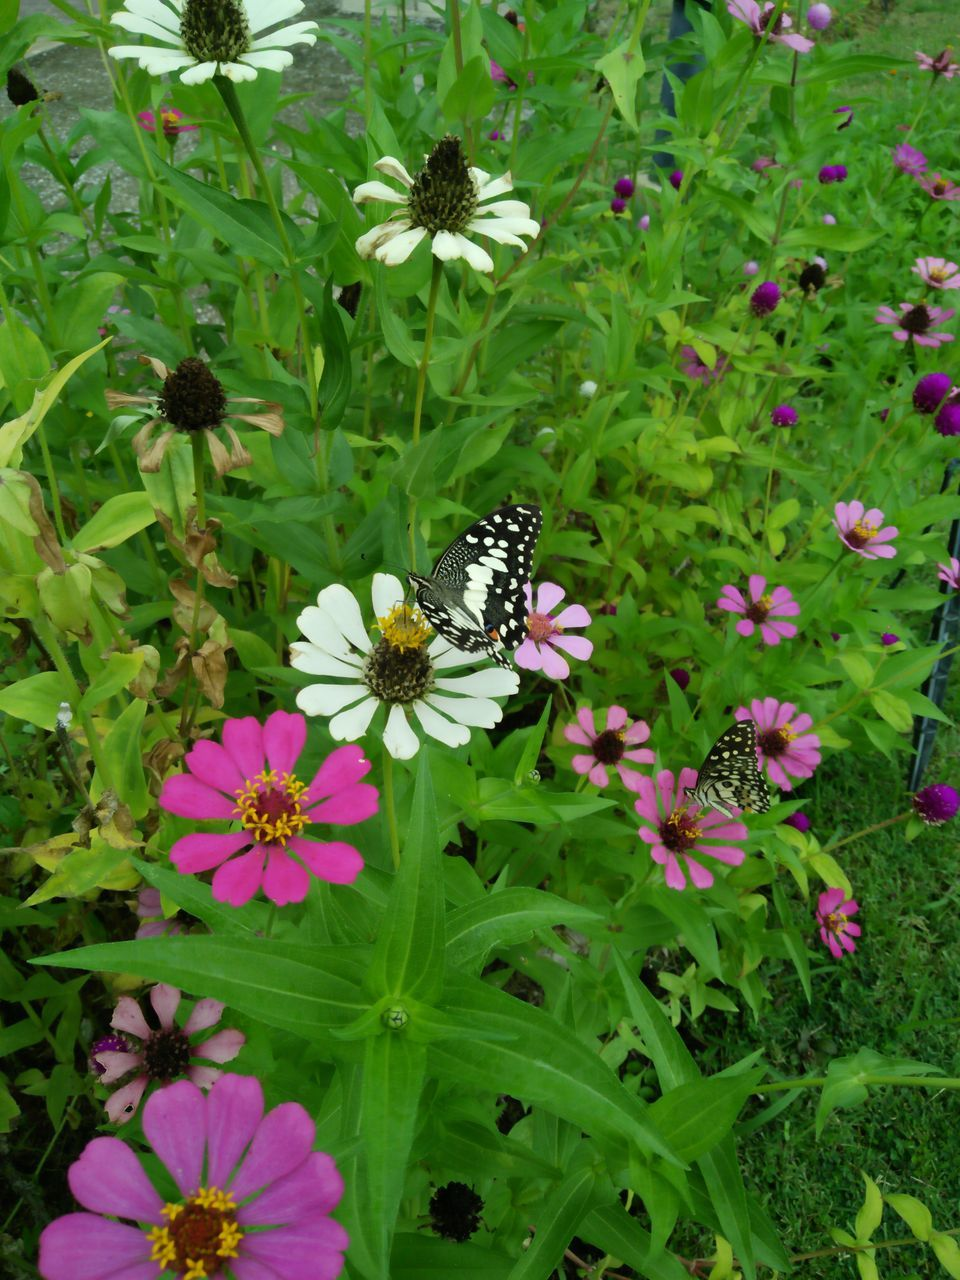 flower, insect, growth, fragility, freshness, nature, animal themes, petal, plant, animals in the wild, butterfly - insect, one animal, beauty in nature, pollination, high angle view, symbiotic relationship, no people, flower head, blooming, outdoors, day, eastern purple coneflower, zinnia